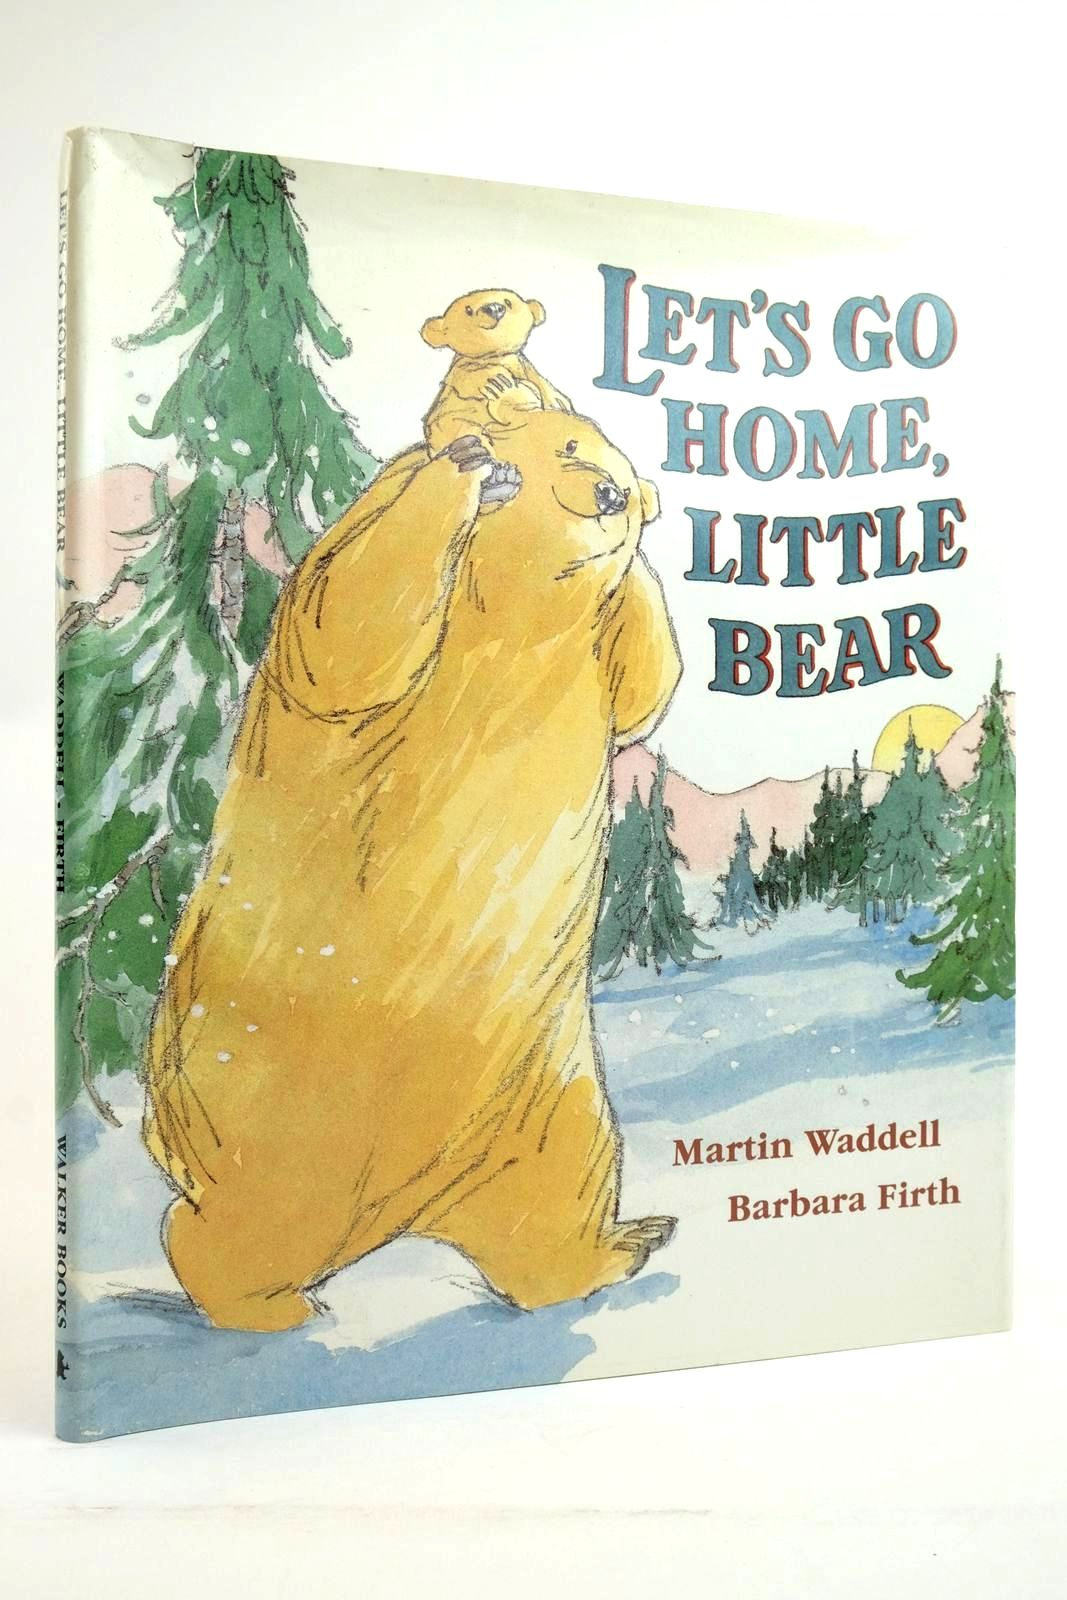 Photo of LET'S GO HOME, LITTLE BEAR written by Waddell, Martin illustrated by Firth, Barbara published by Walker Books (STOCK CODE: 2135553)  for sale by Stella & Rose's Books